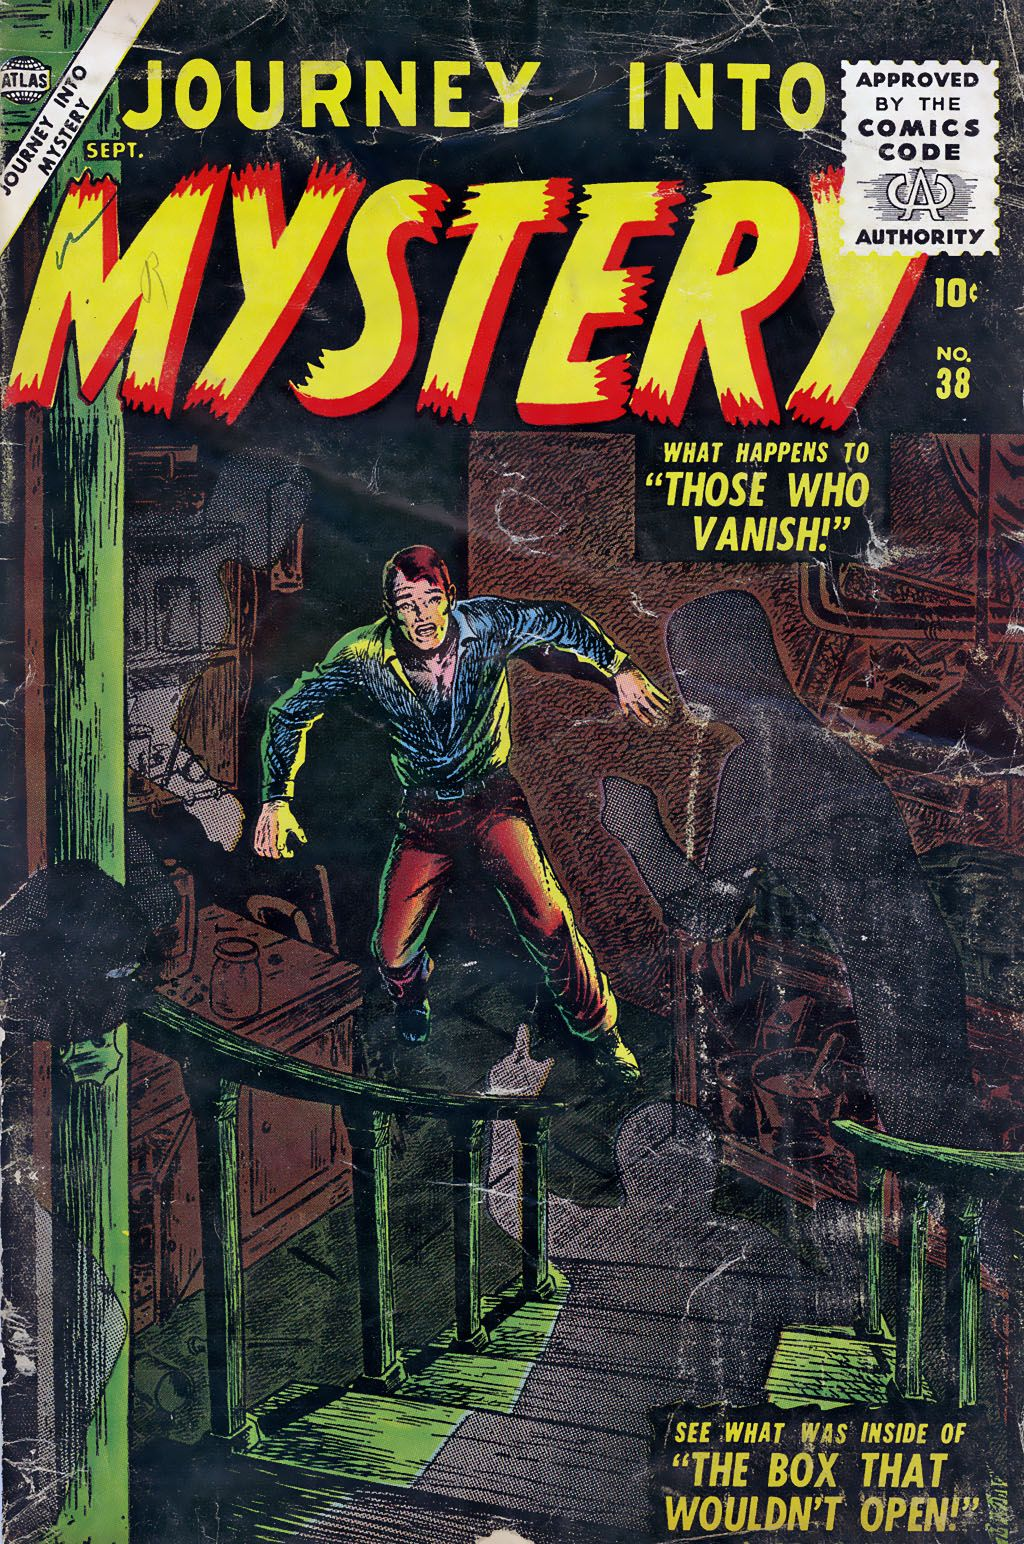 Pin by anthony campanile on journey into mystery 182